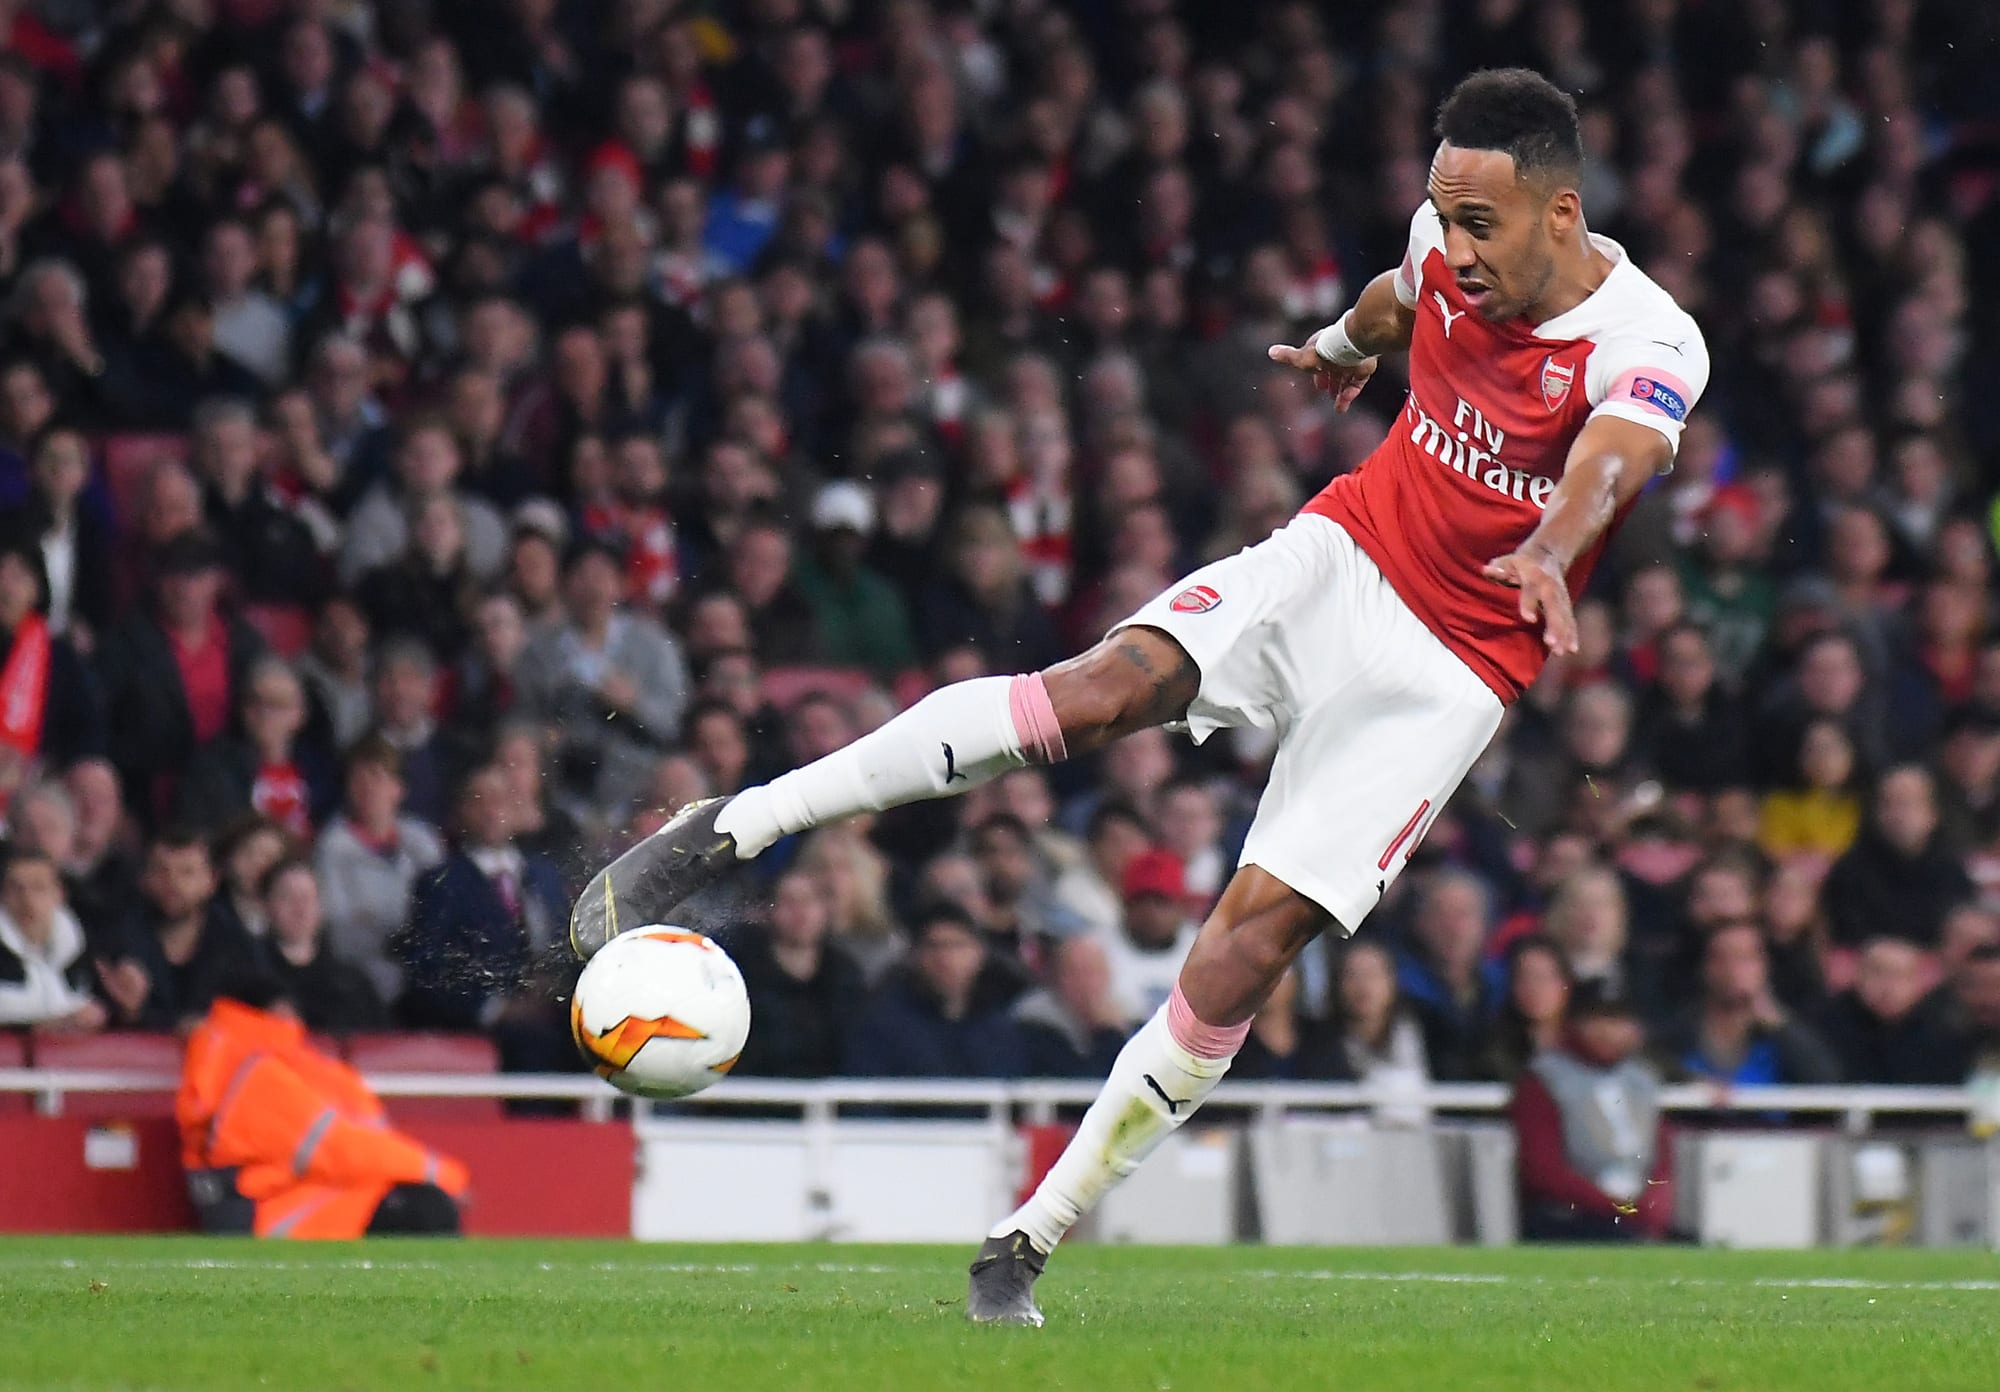 Aubameyang Scores for Arsenal